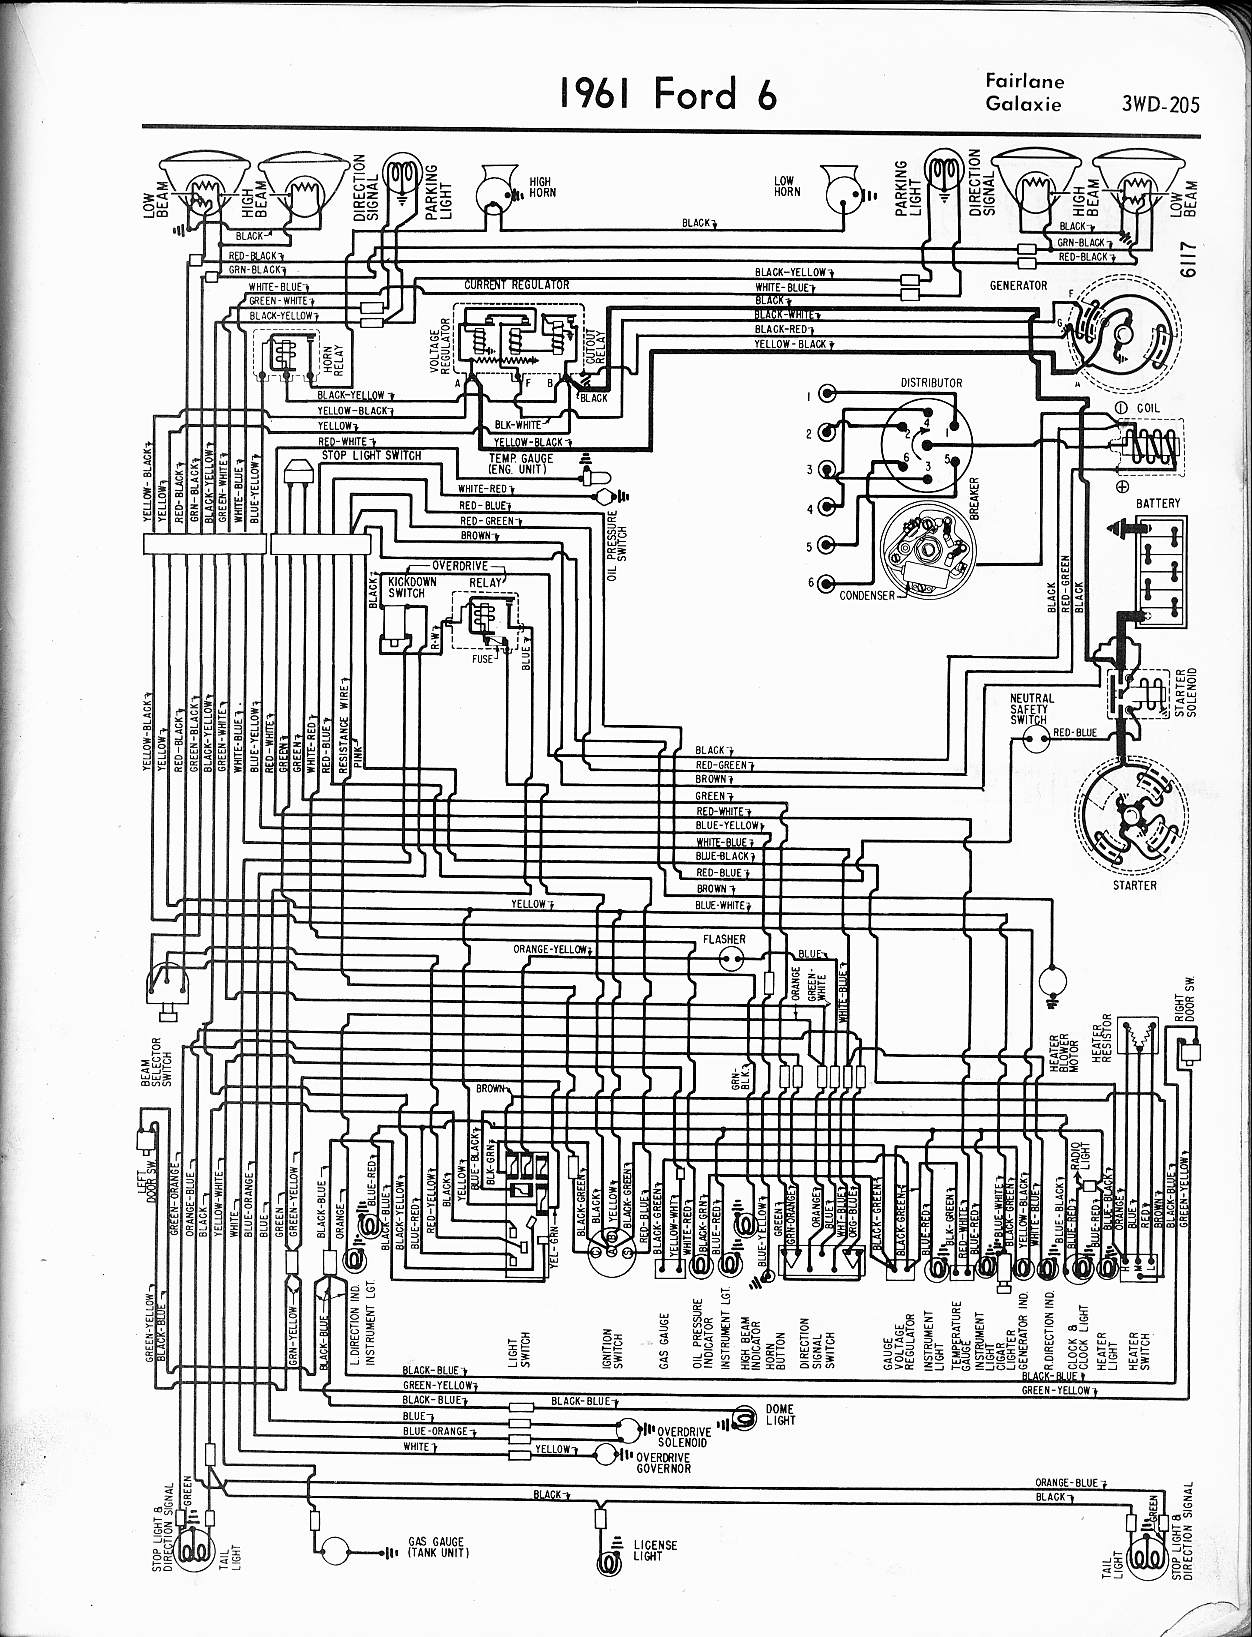 Surprising 56 Ford Wiring Diagram Wiring Library Wiring Cloud Staixuggs Outletorg